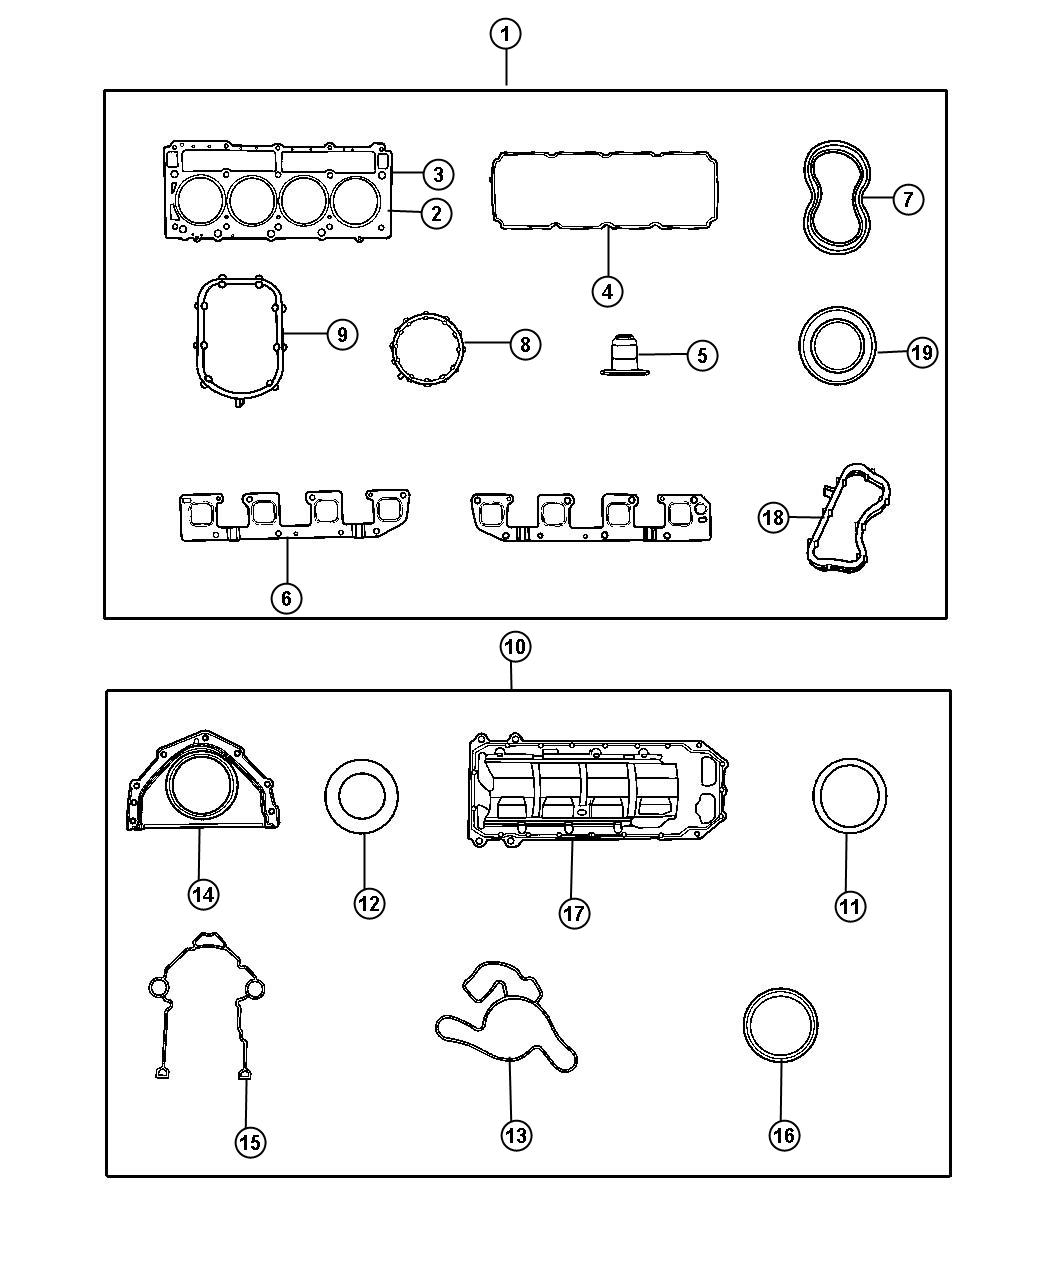 i2198374  L Hemi Engine Gasket Diagram on jeep grand cherokee, jeep cherokee, performance parts, engine pulley part number, engine pulley schematic, v8 horsepower, intake manifold upgrade,